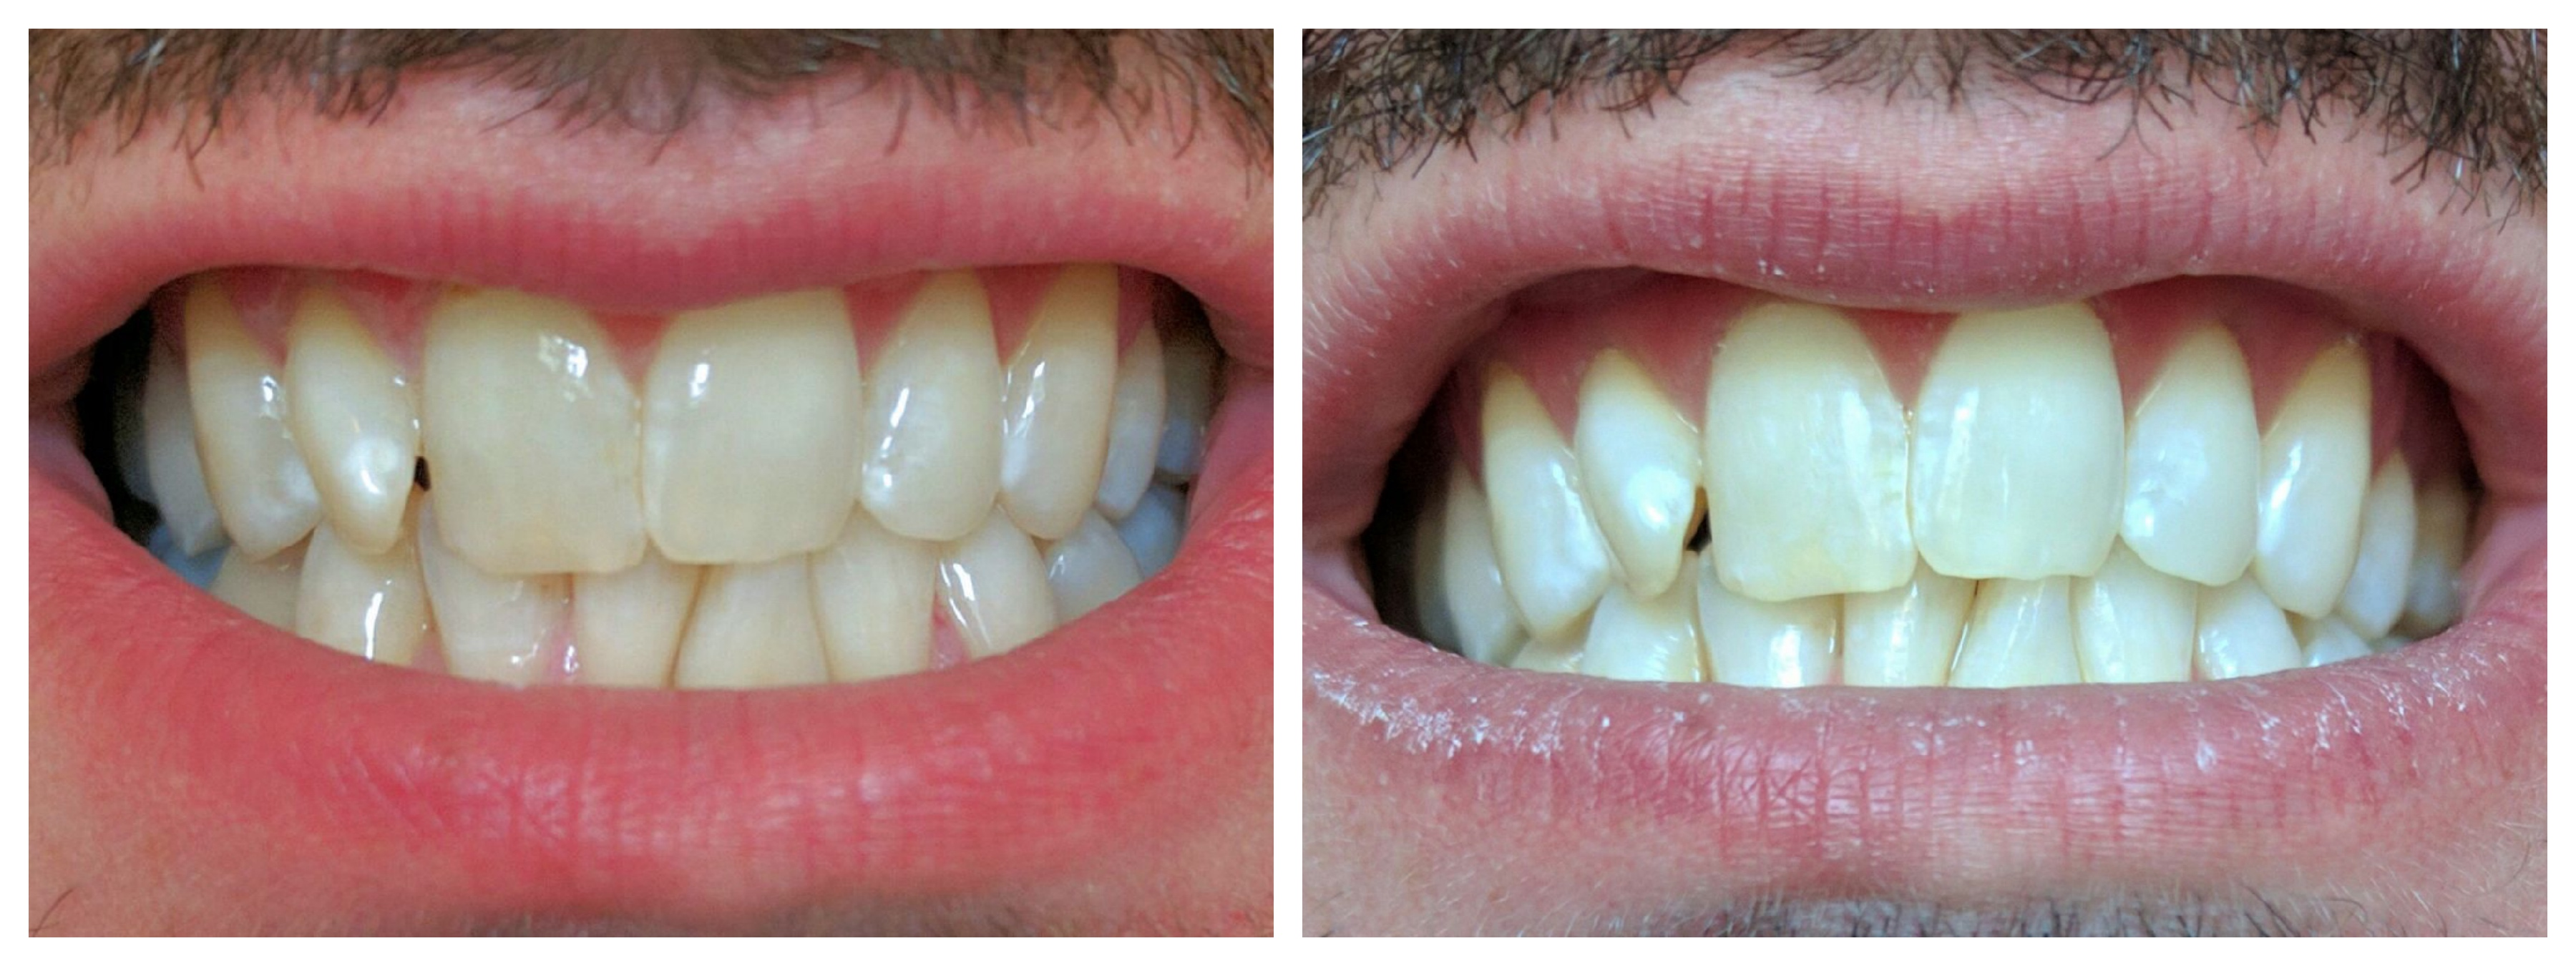 Boutique Teeth Whitening at White Swan Aesthetics, Wimbledon: Before and After